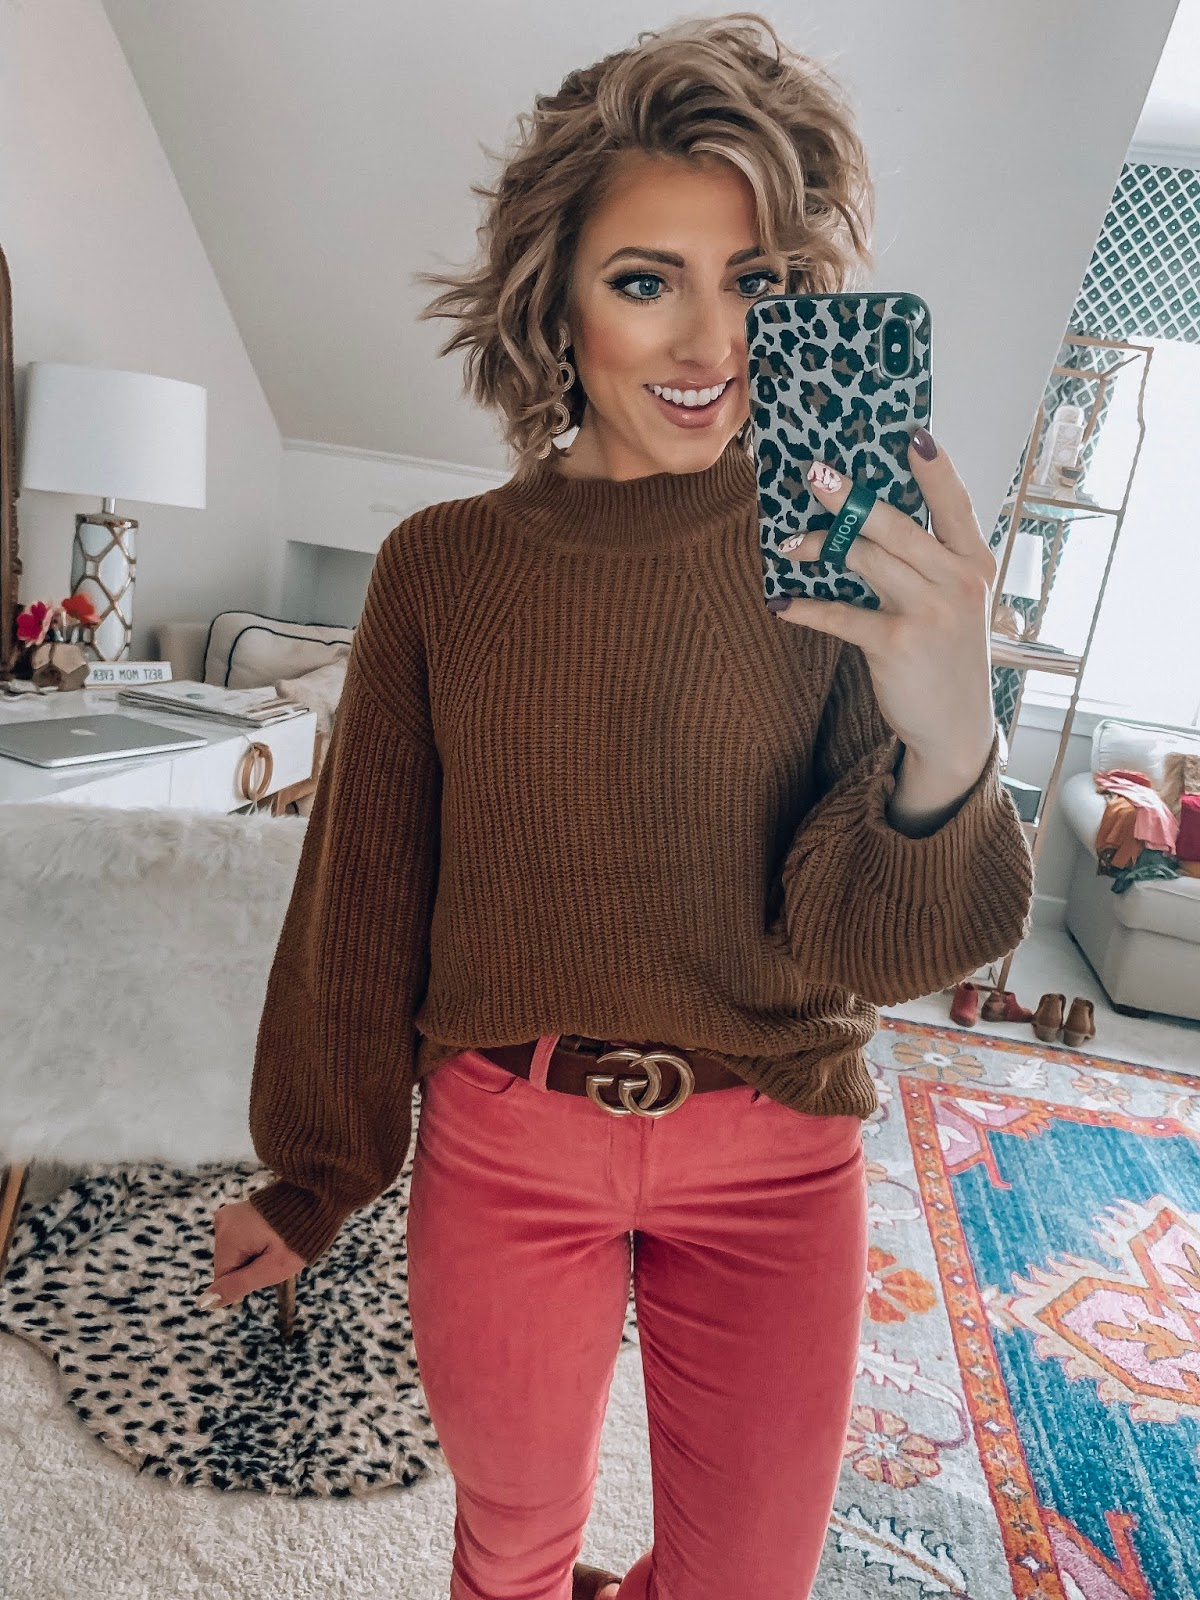 Old Navy High Waist Rockstar Cord Skinnies + Mock Neck Sweater - Somethig Delightful Blog #affordablefashion